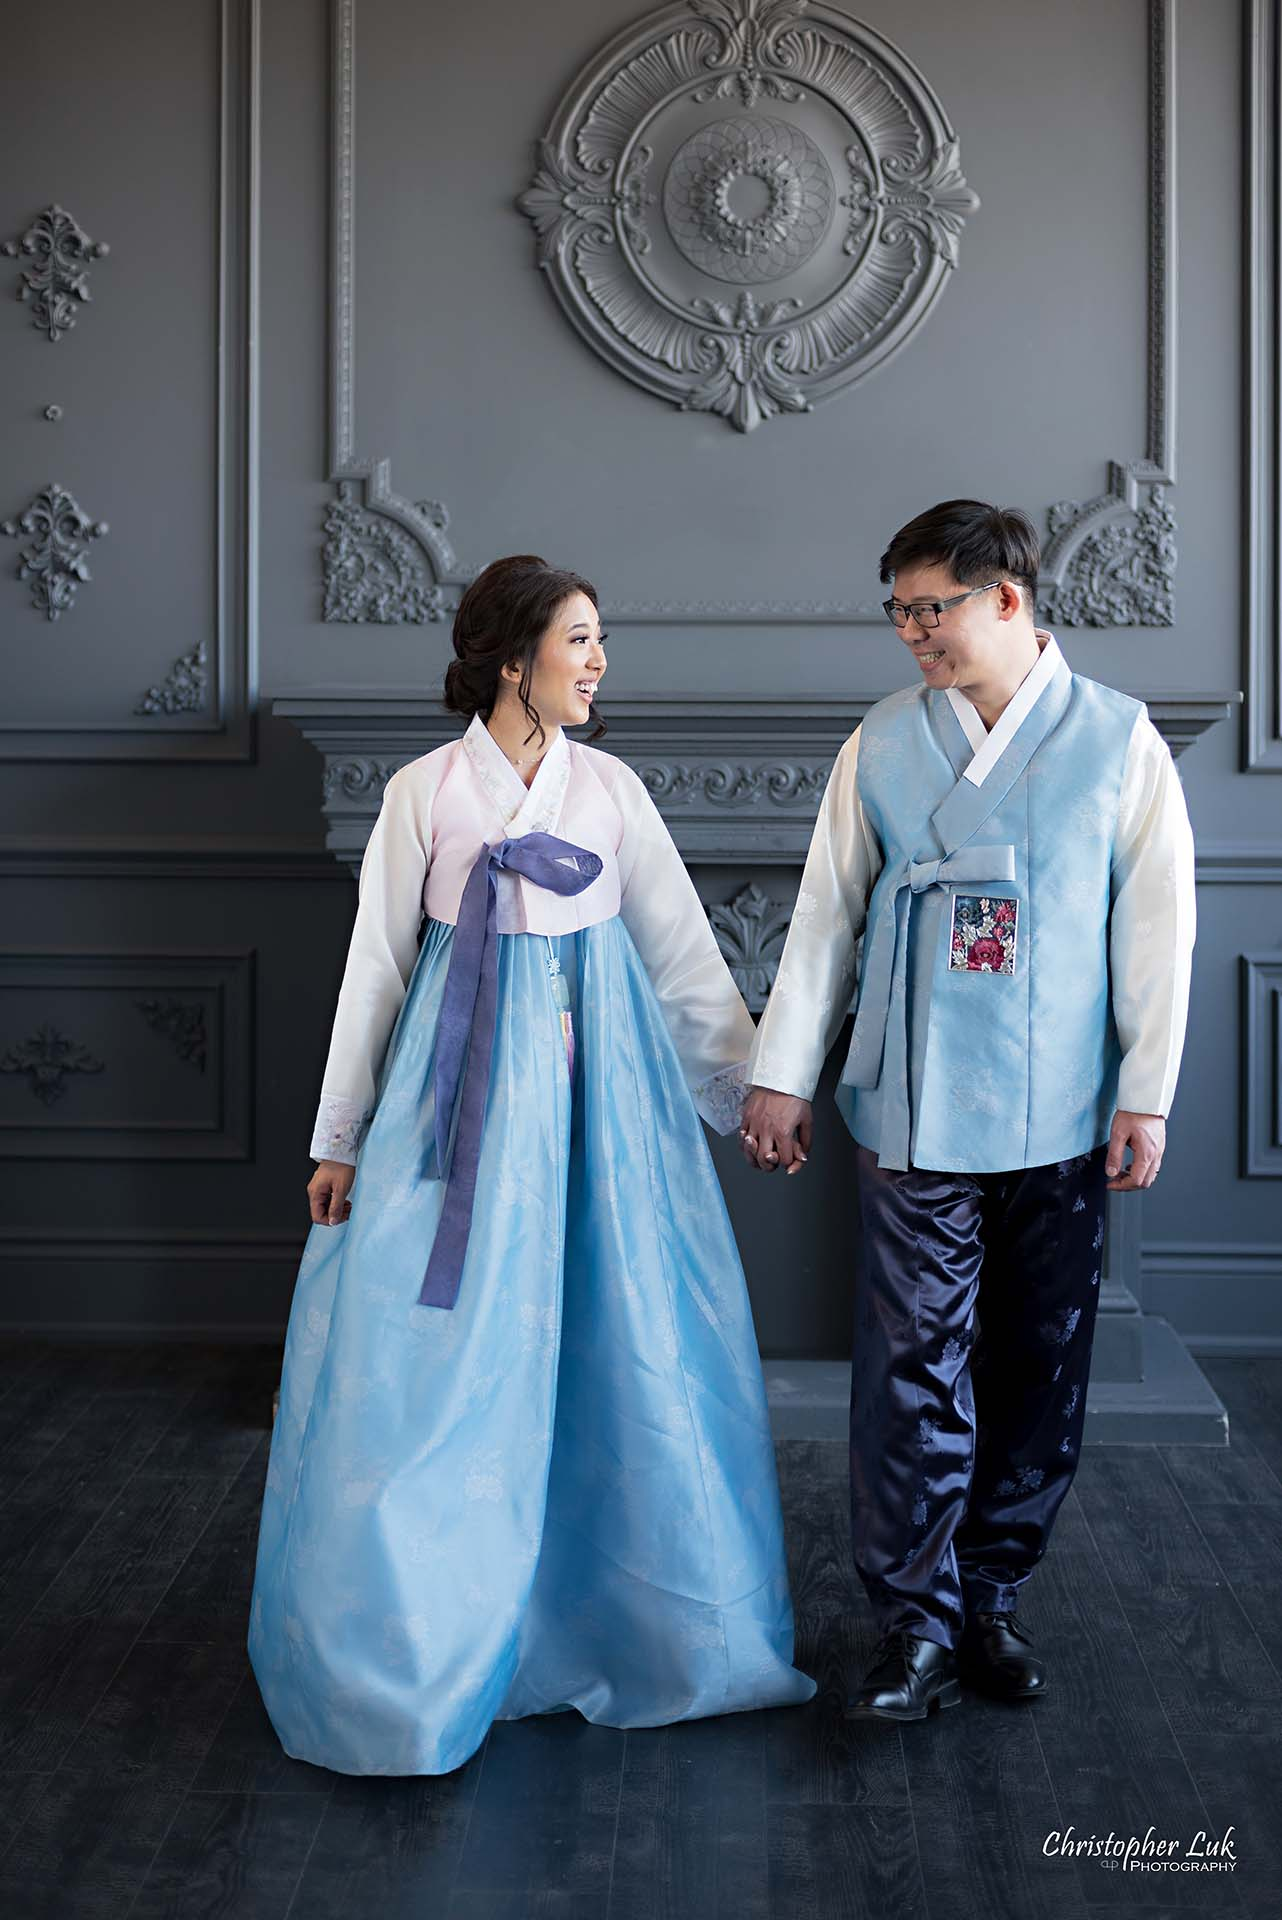 Christopher Luk Toronto Wedding Photographer - Mint Room Studios Bride Groom Natural Candid Photojournalistic Library Studio Korean Drama Hanbok Fireplace Walking Together Holding Hands